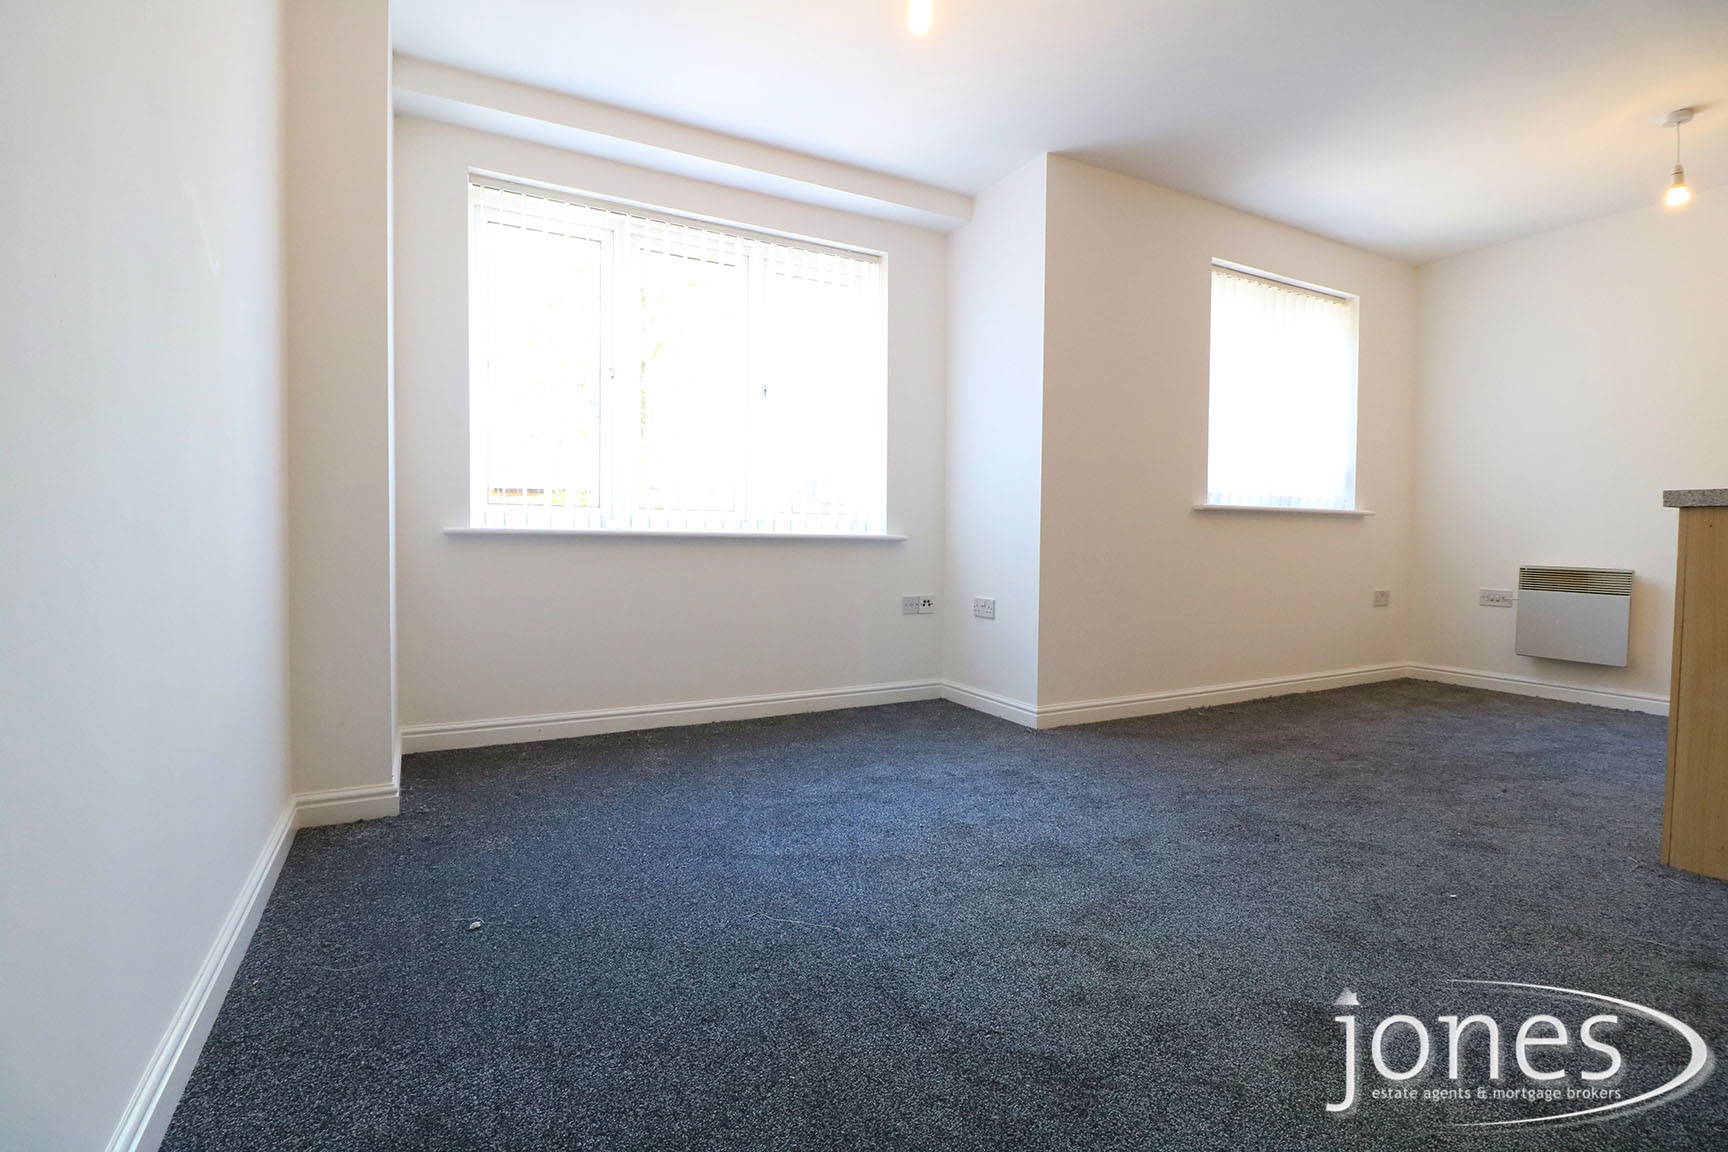 Home for Sale Let - Photo 02 Earls Court, Norton, Stockton on Tees TS20 2NP